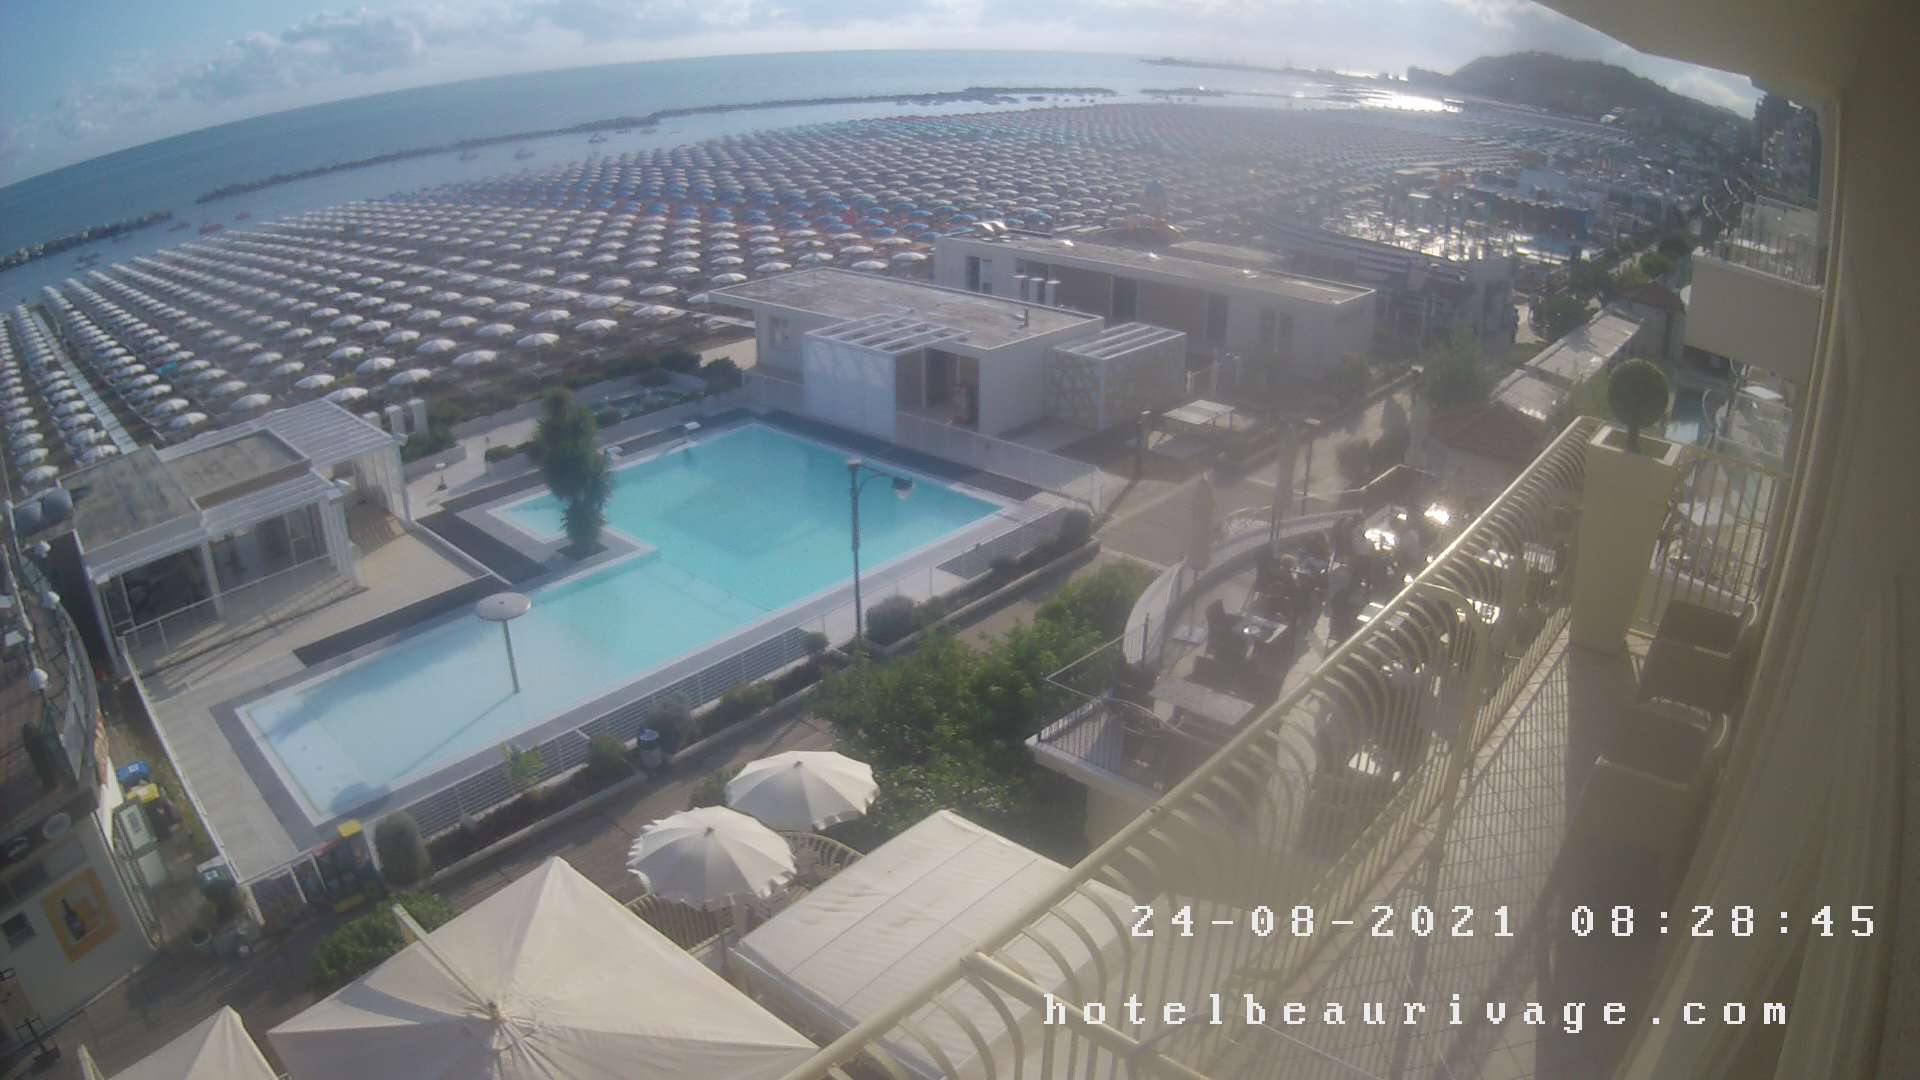 Webcam Cattolica Hotel Beaurivage 4 stelle sul mare